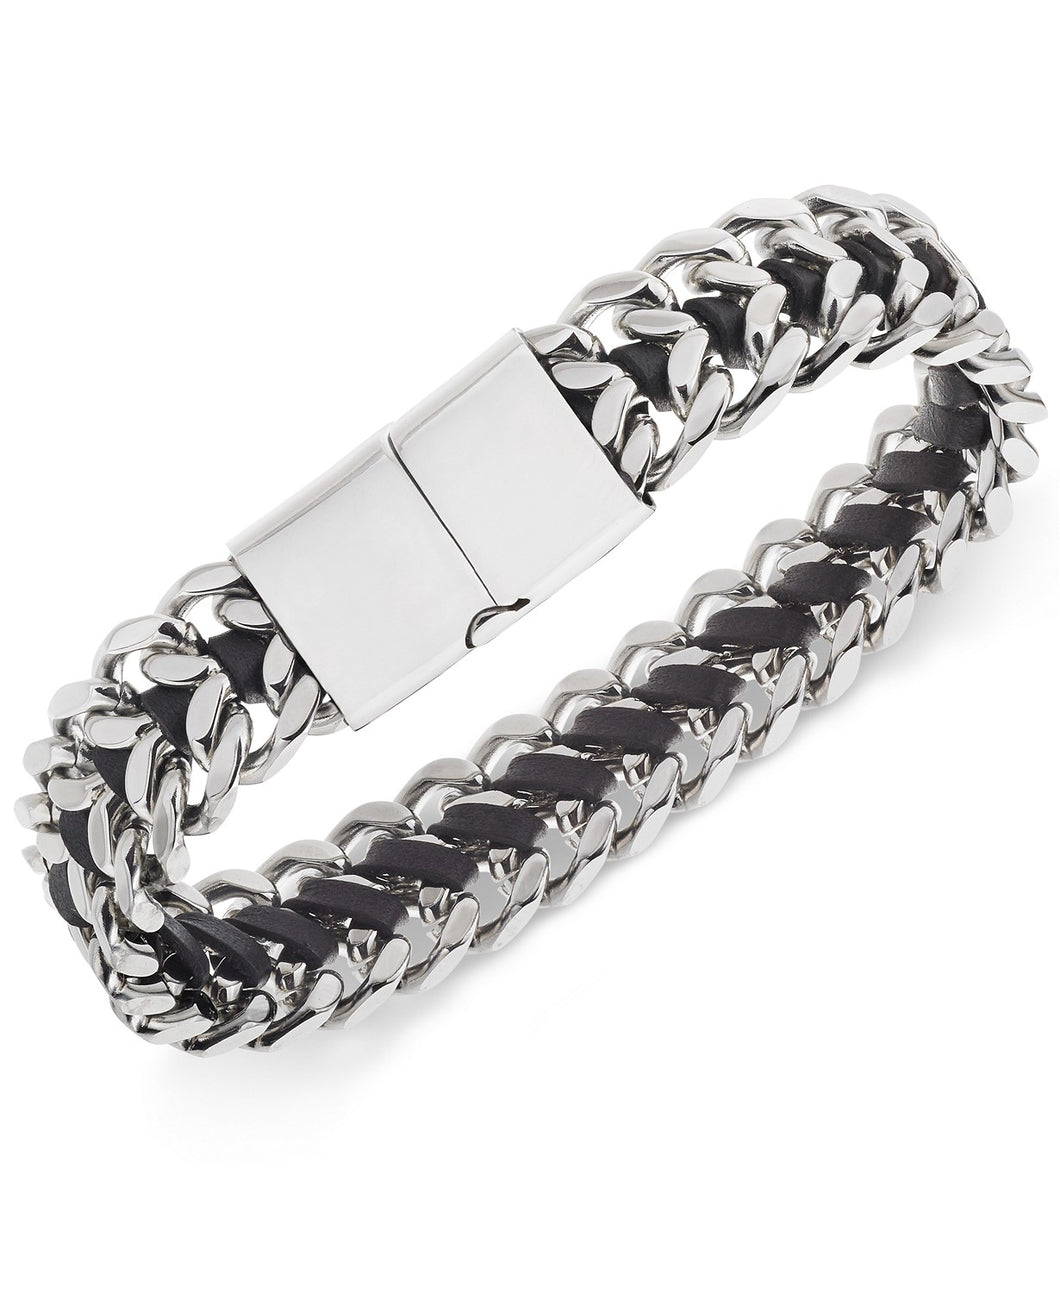 Men's Stainless Steel Woven Leather Bracelet